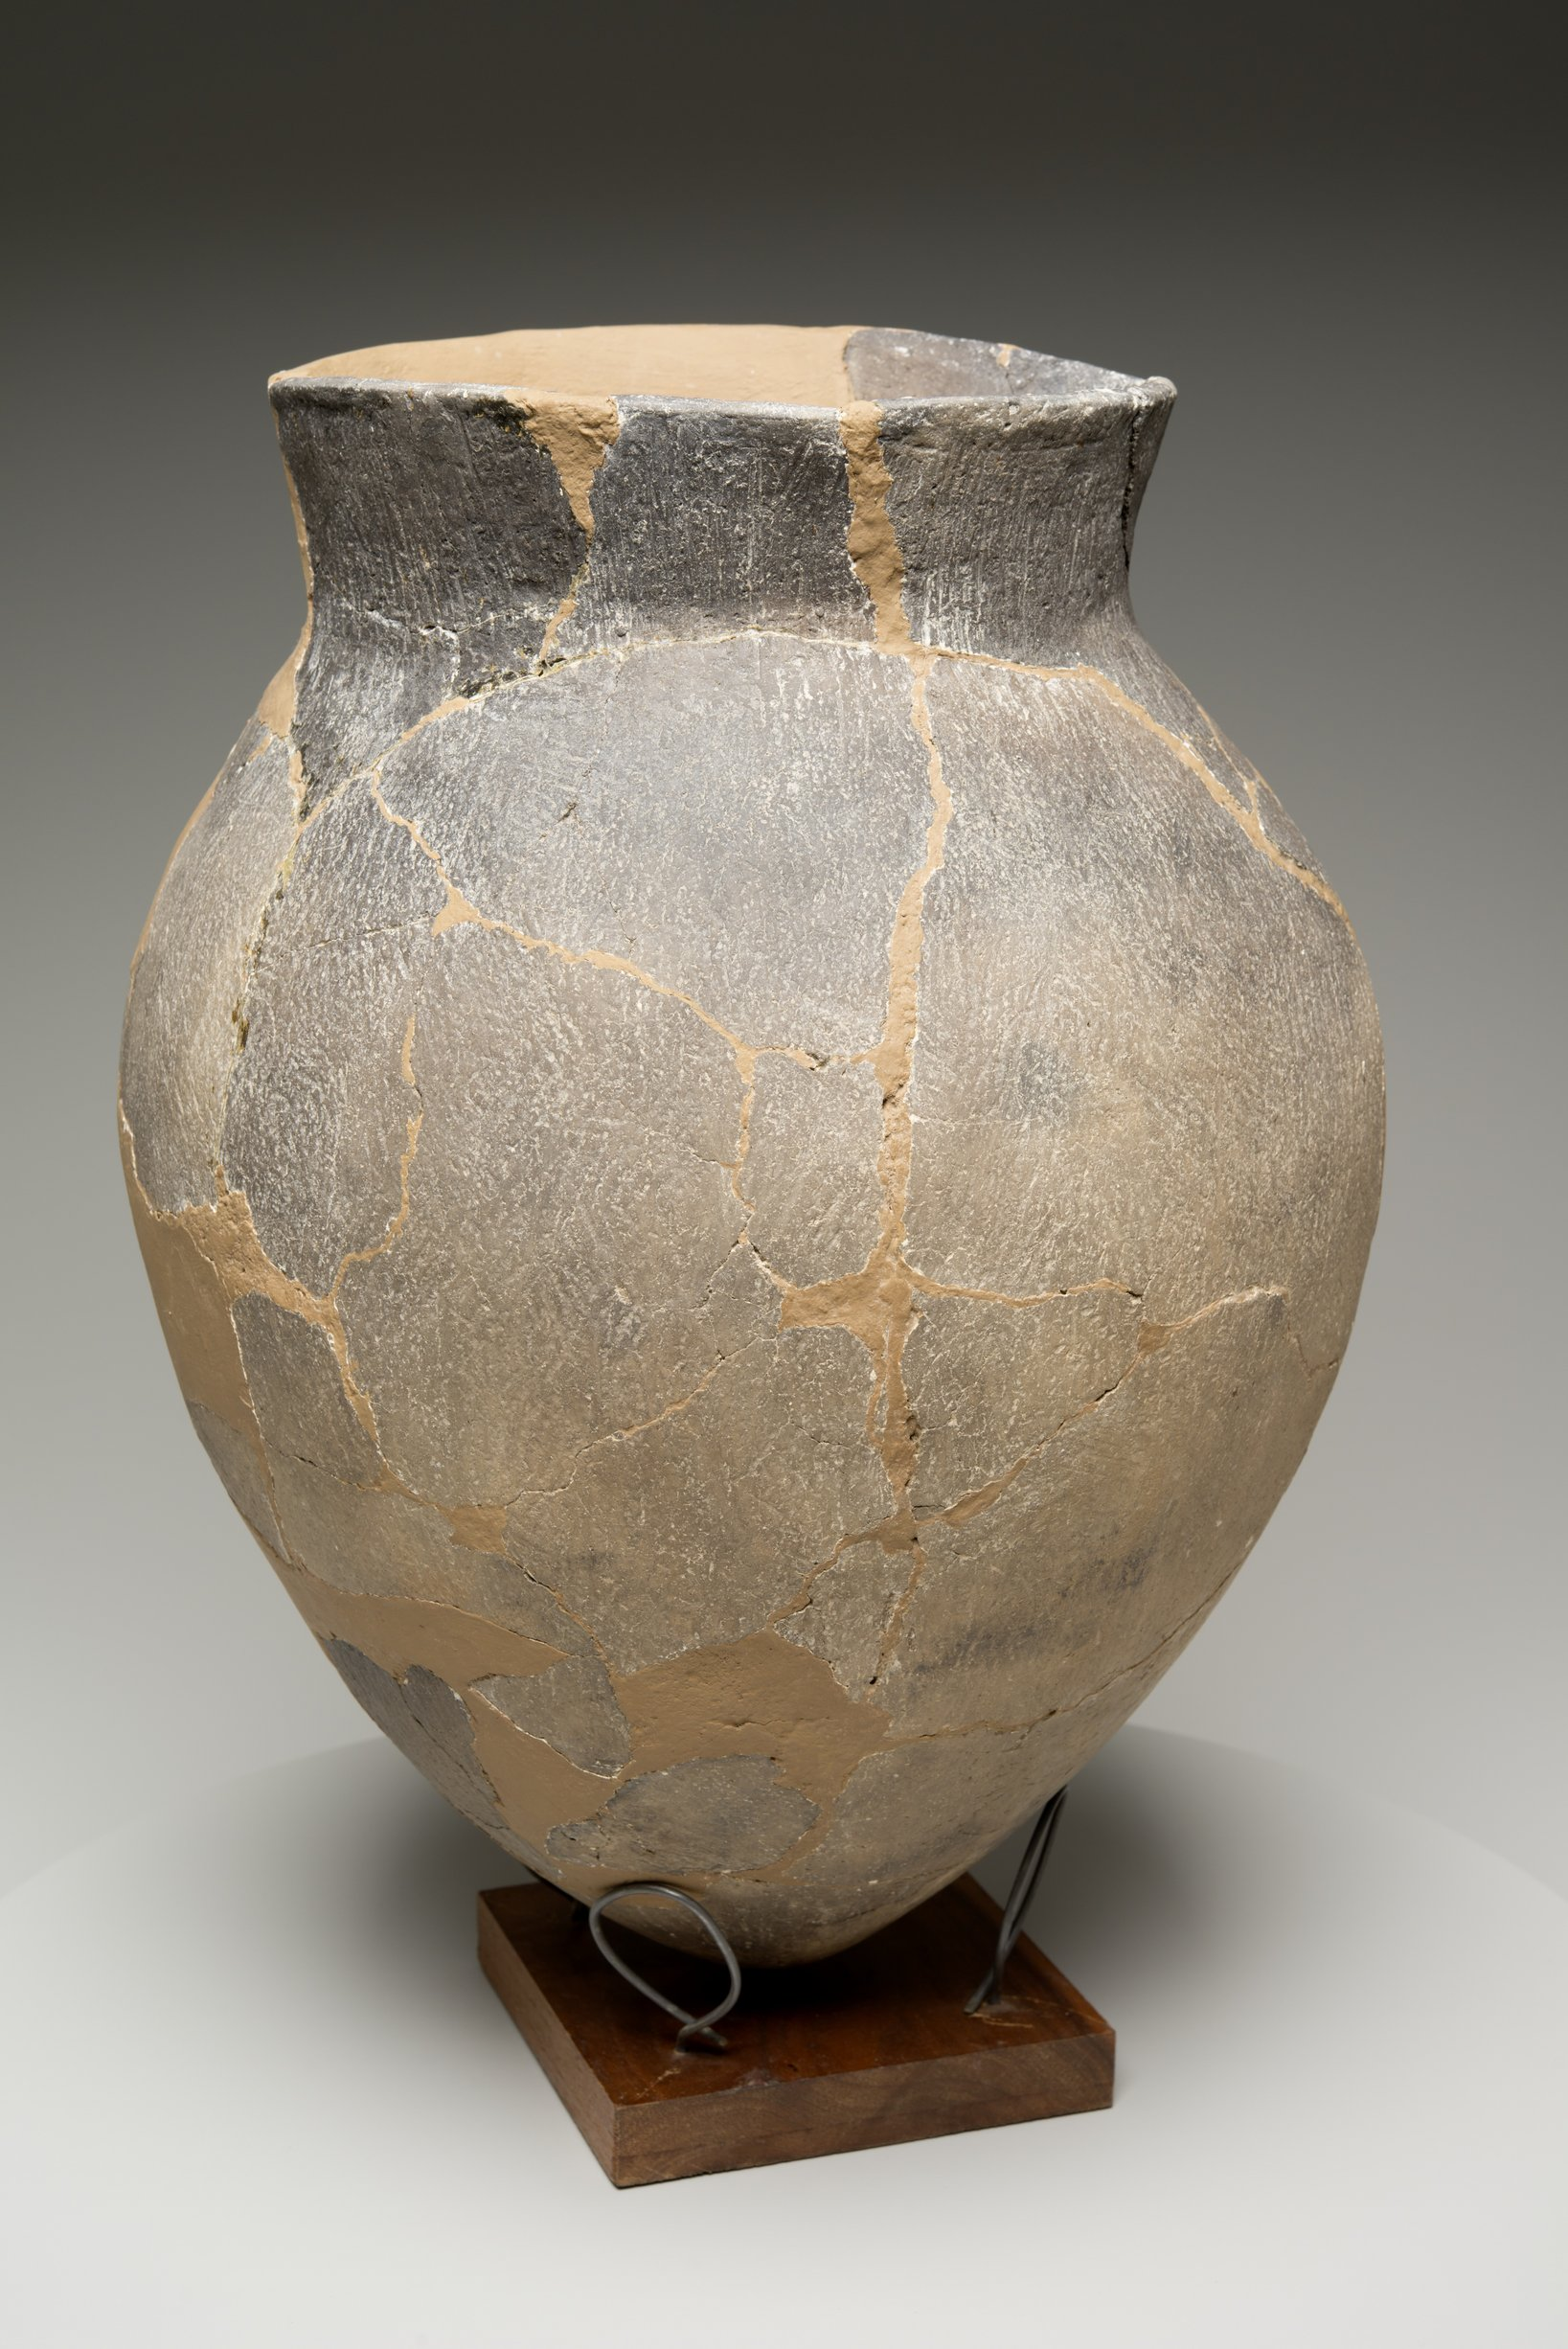 Grasshopper Falls phase Early Ceramic Vessel From the Booth Site, 14JN349 - 35